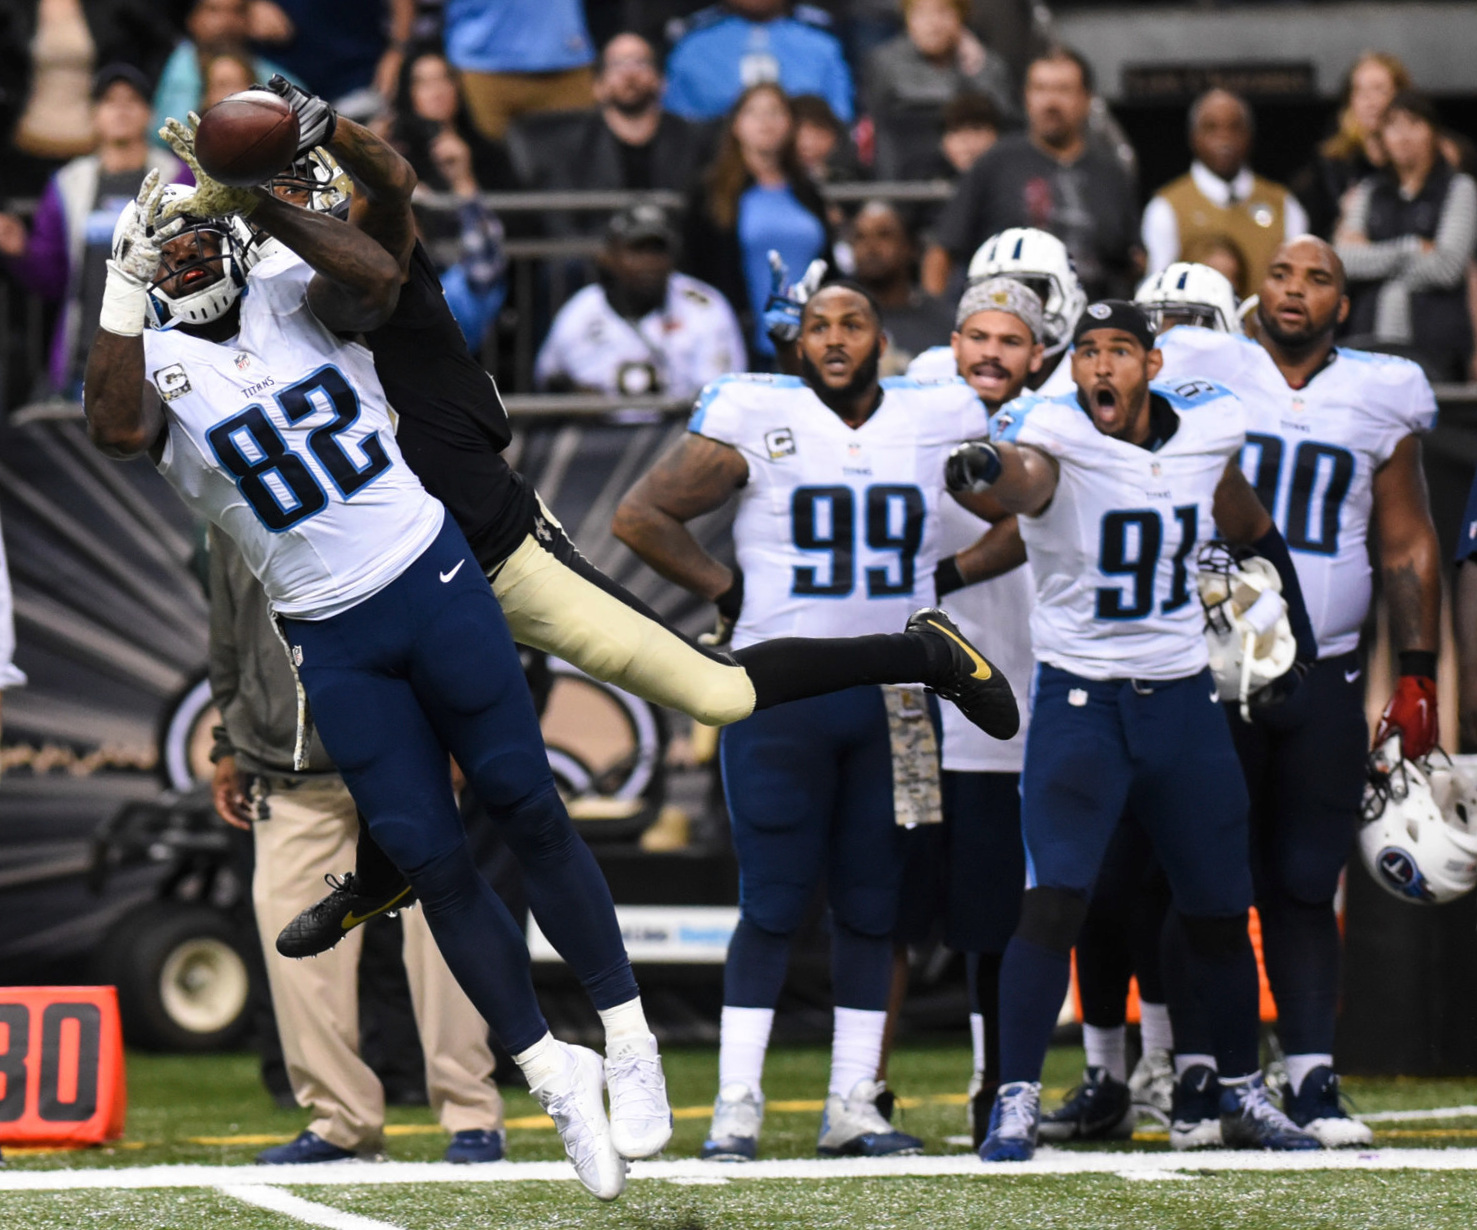 Titans tight end Delanie Walker (82) goes up for a pass with a Saints defender behind him during the game at the Mercedes-Benz Superdome in New Orleans. Sunday Nov. 8, 2015. The Saints fell to the Titans 34-28 in overtime.